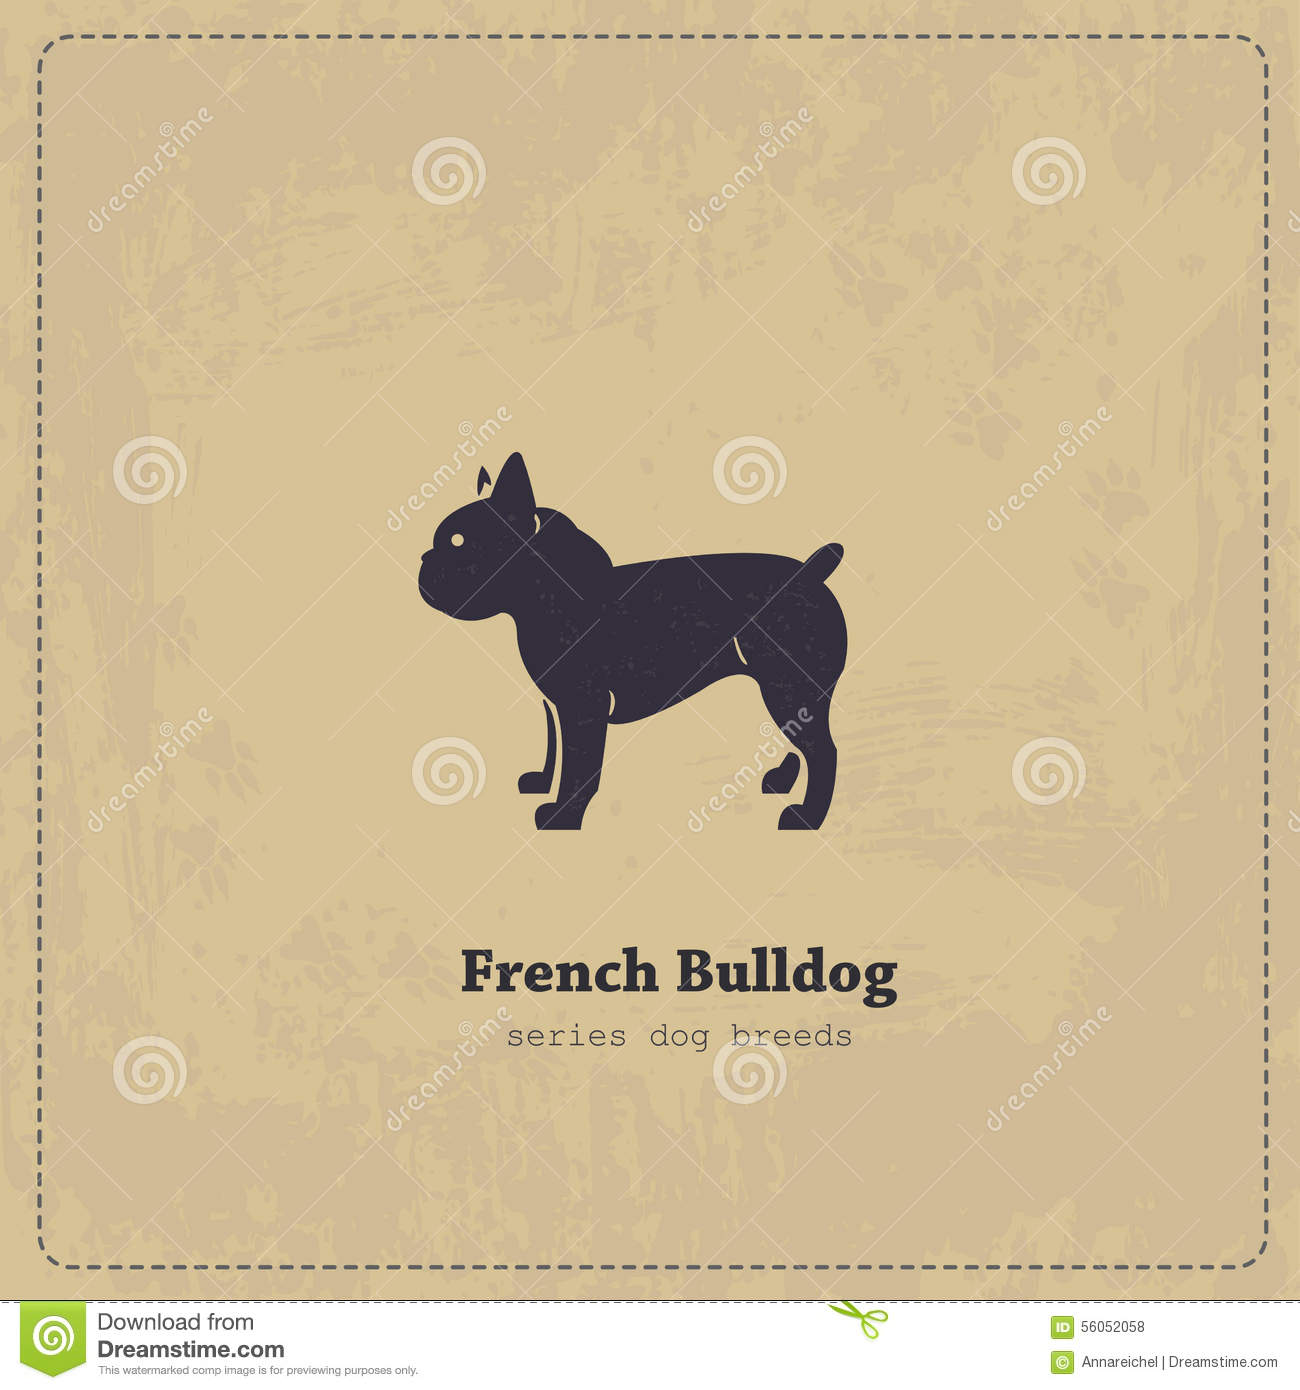 French Bulldog Silhouette Vintage Poster Stock